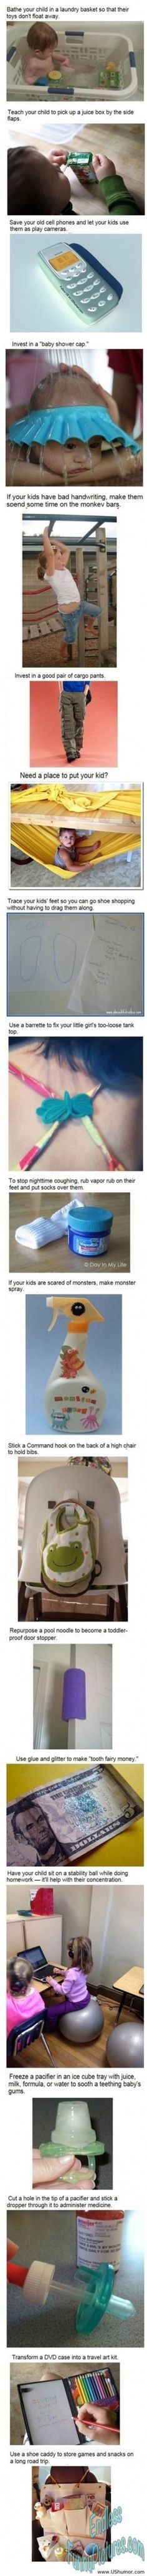 some of these things seem real useful. i dont know about hanging my kid underneath a table though lol